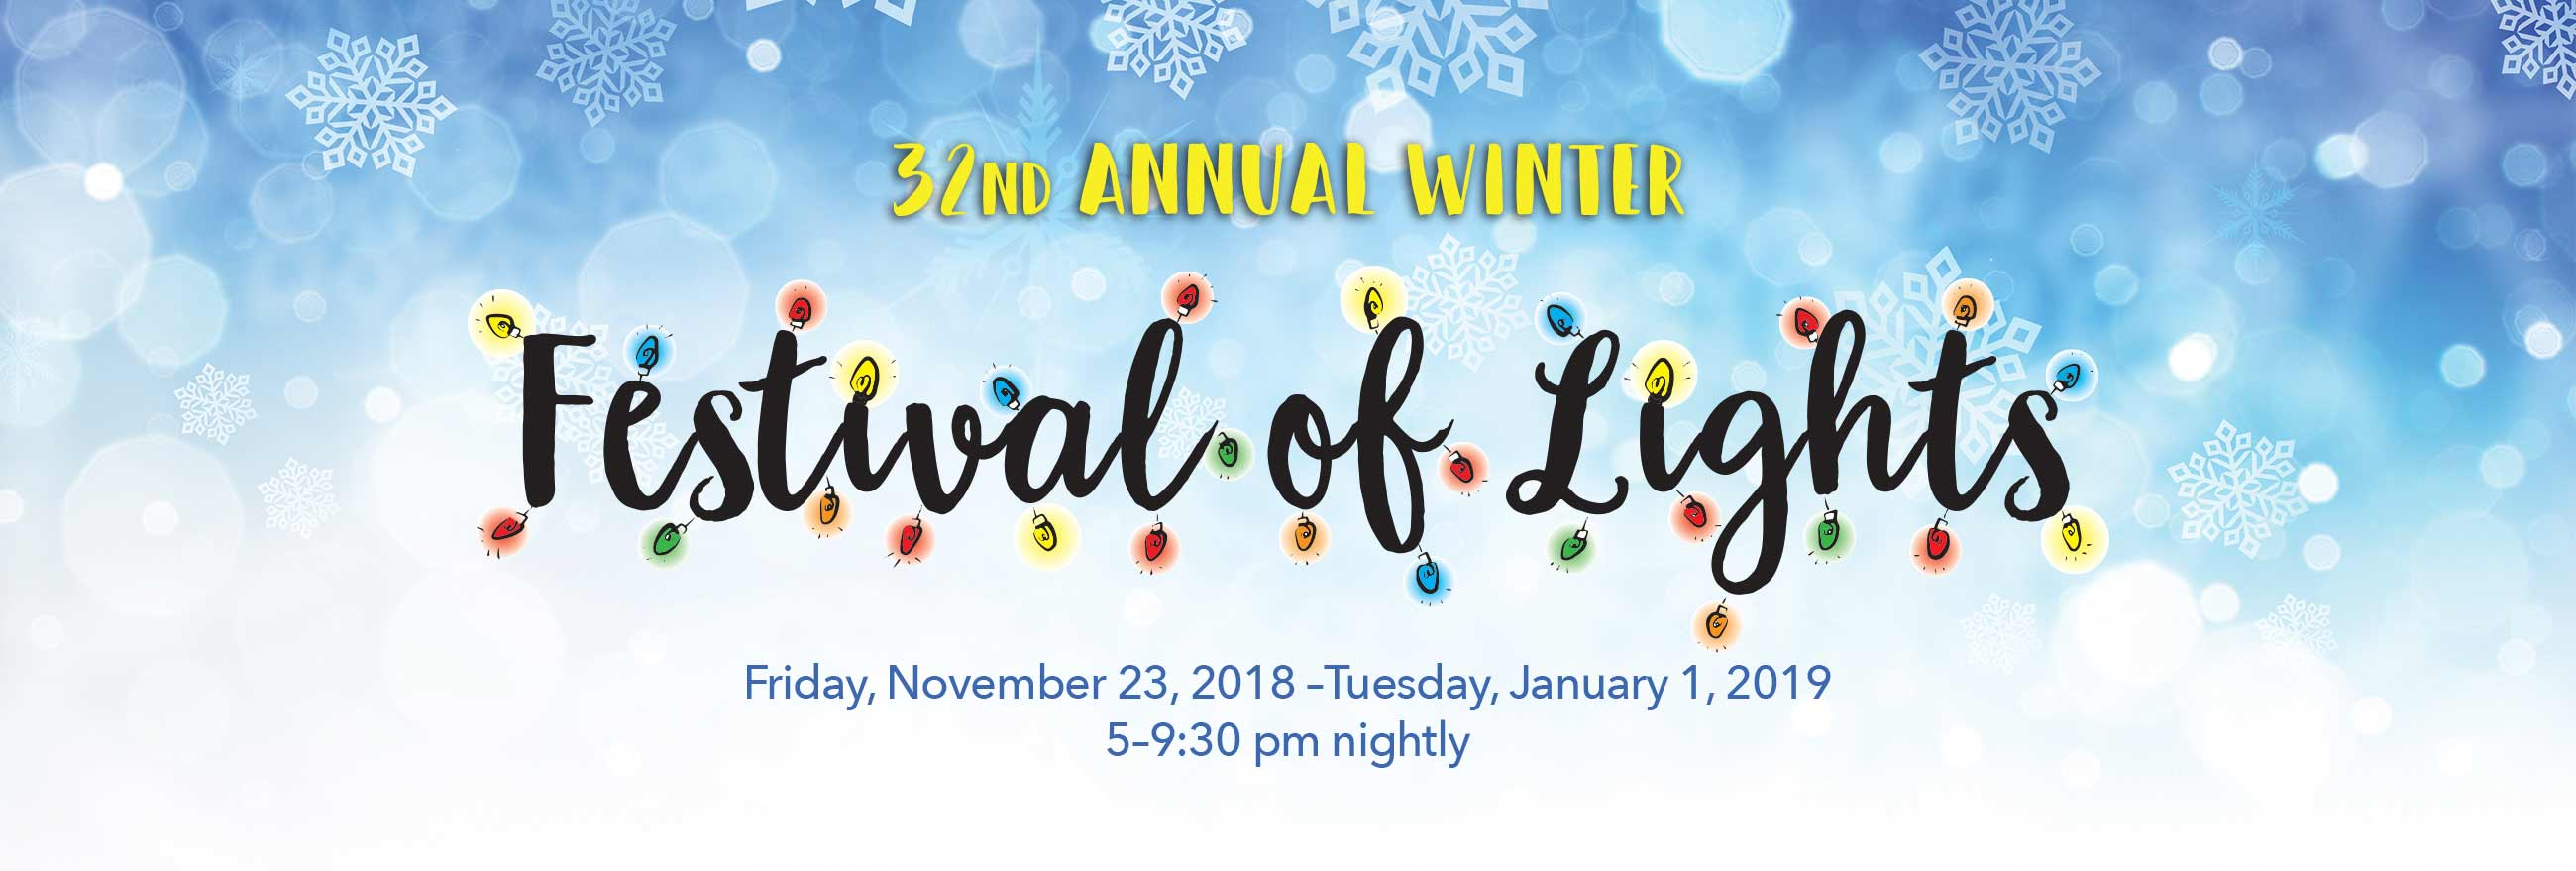 32nd Annual Festival of Lights at Watkins Regional Park